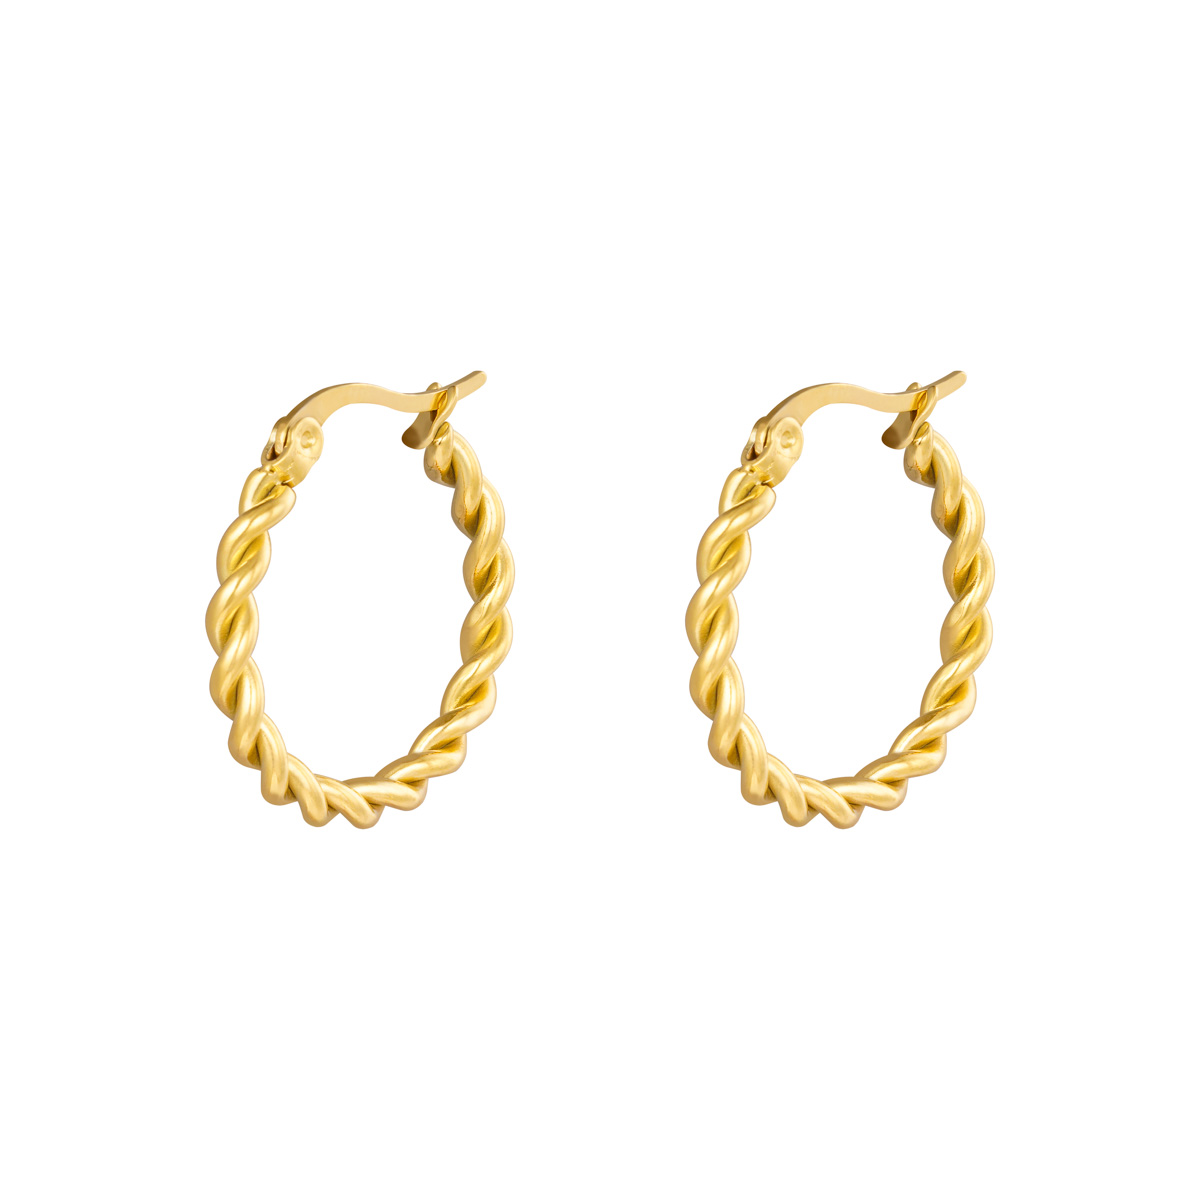 Twined Hoops - 22 mm.